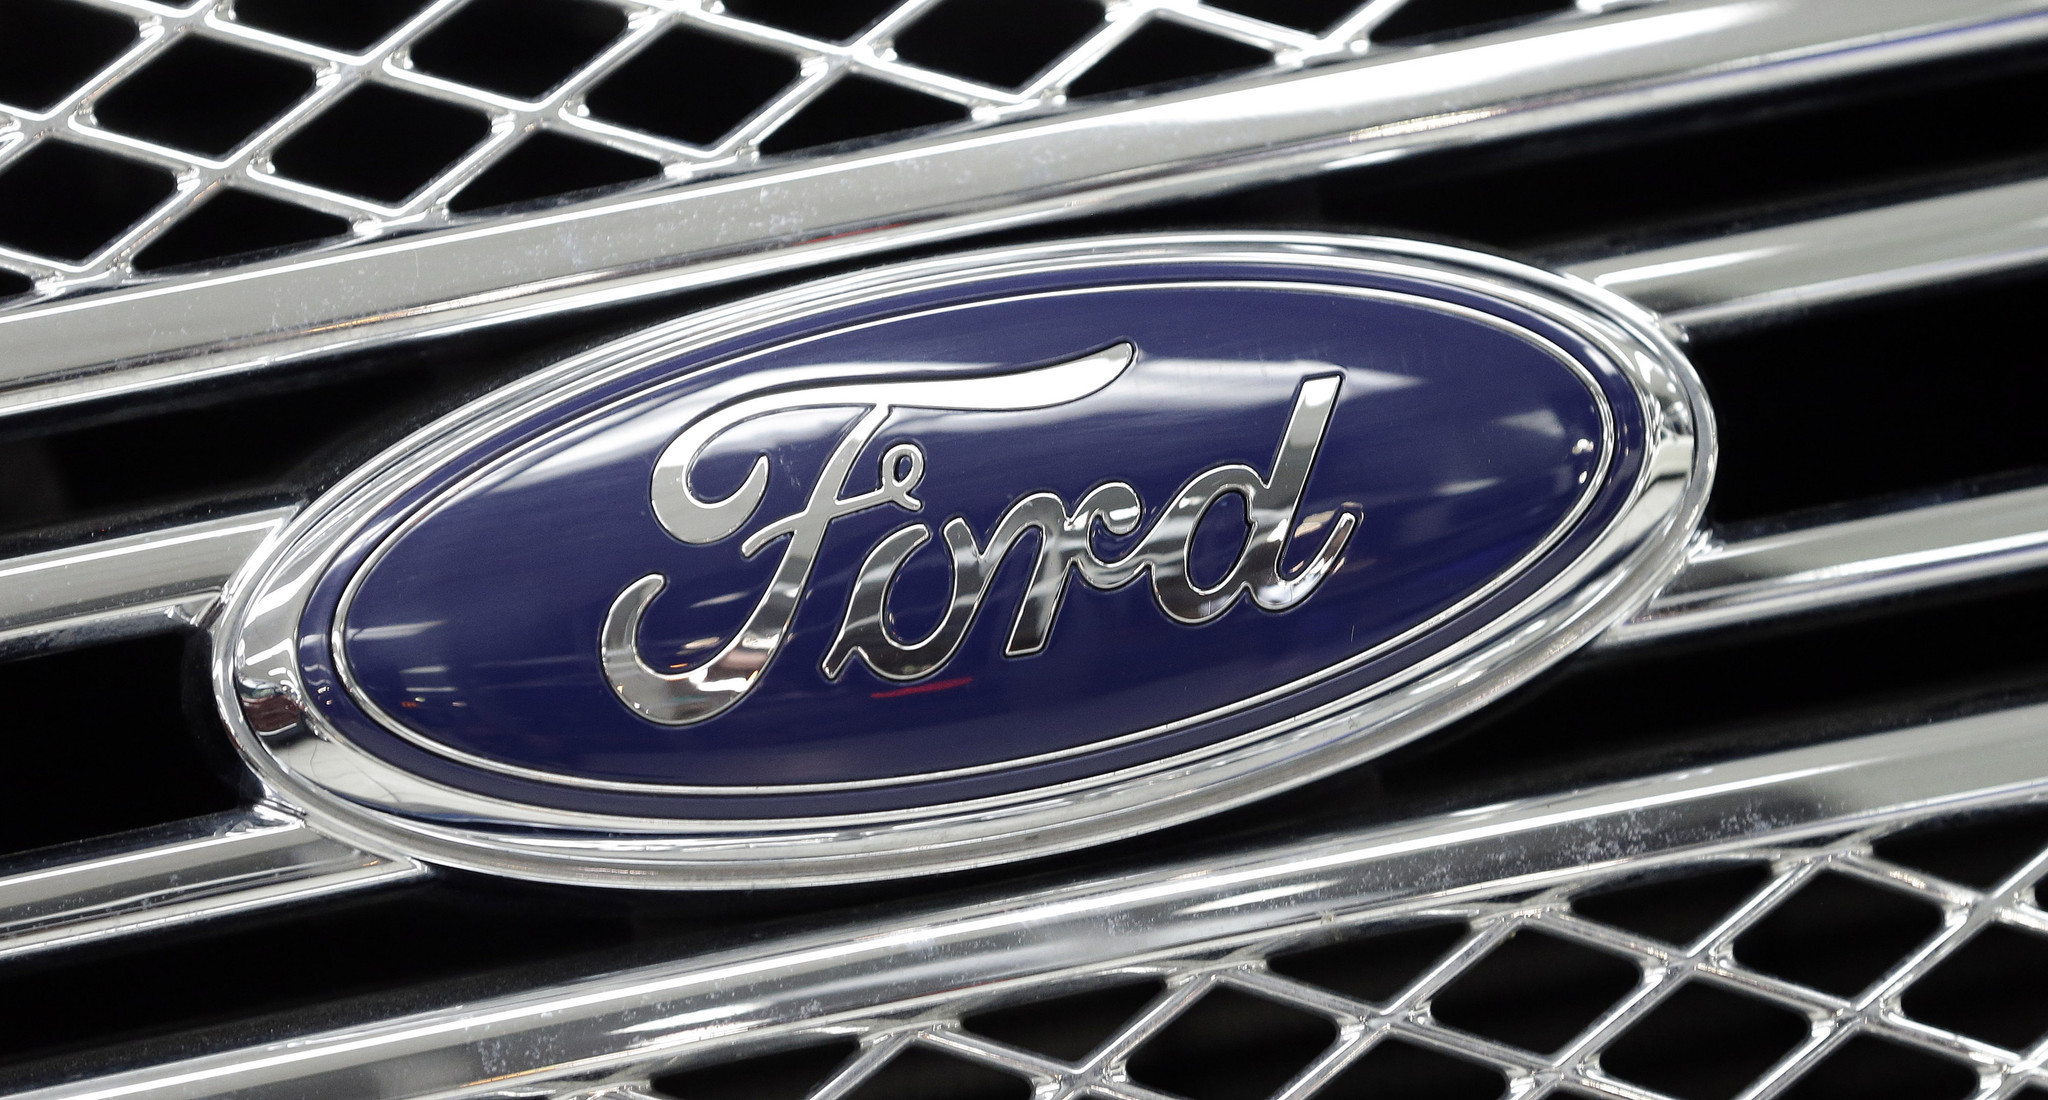 Ford to build factory in mexico moving small car production from u s la times